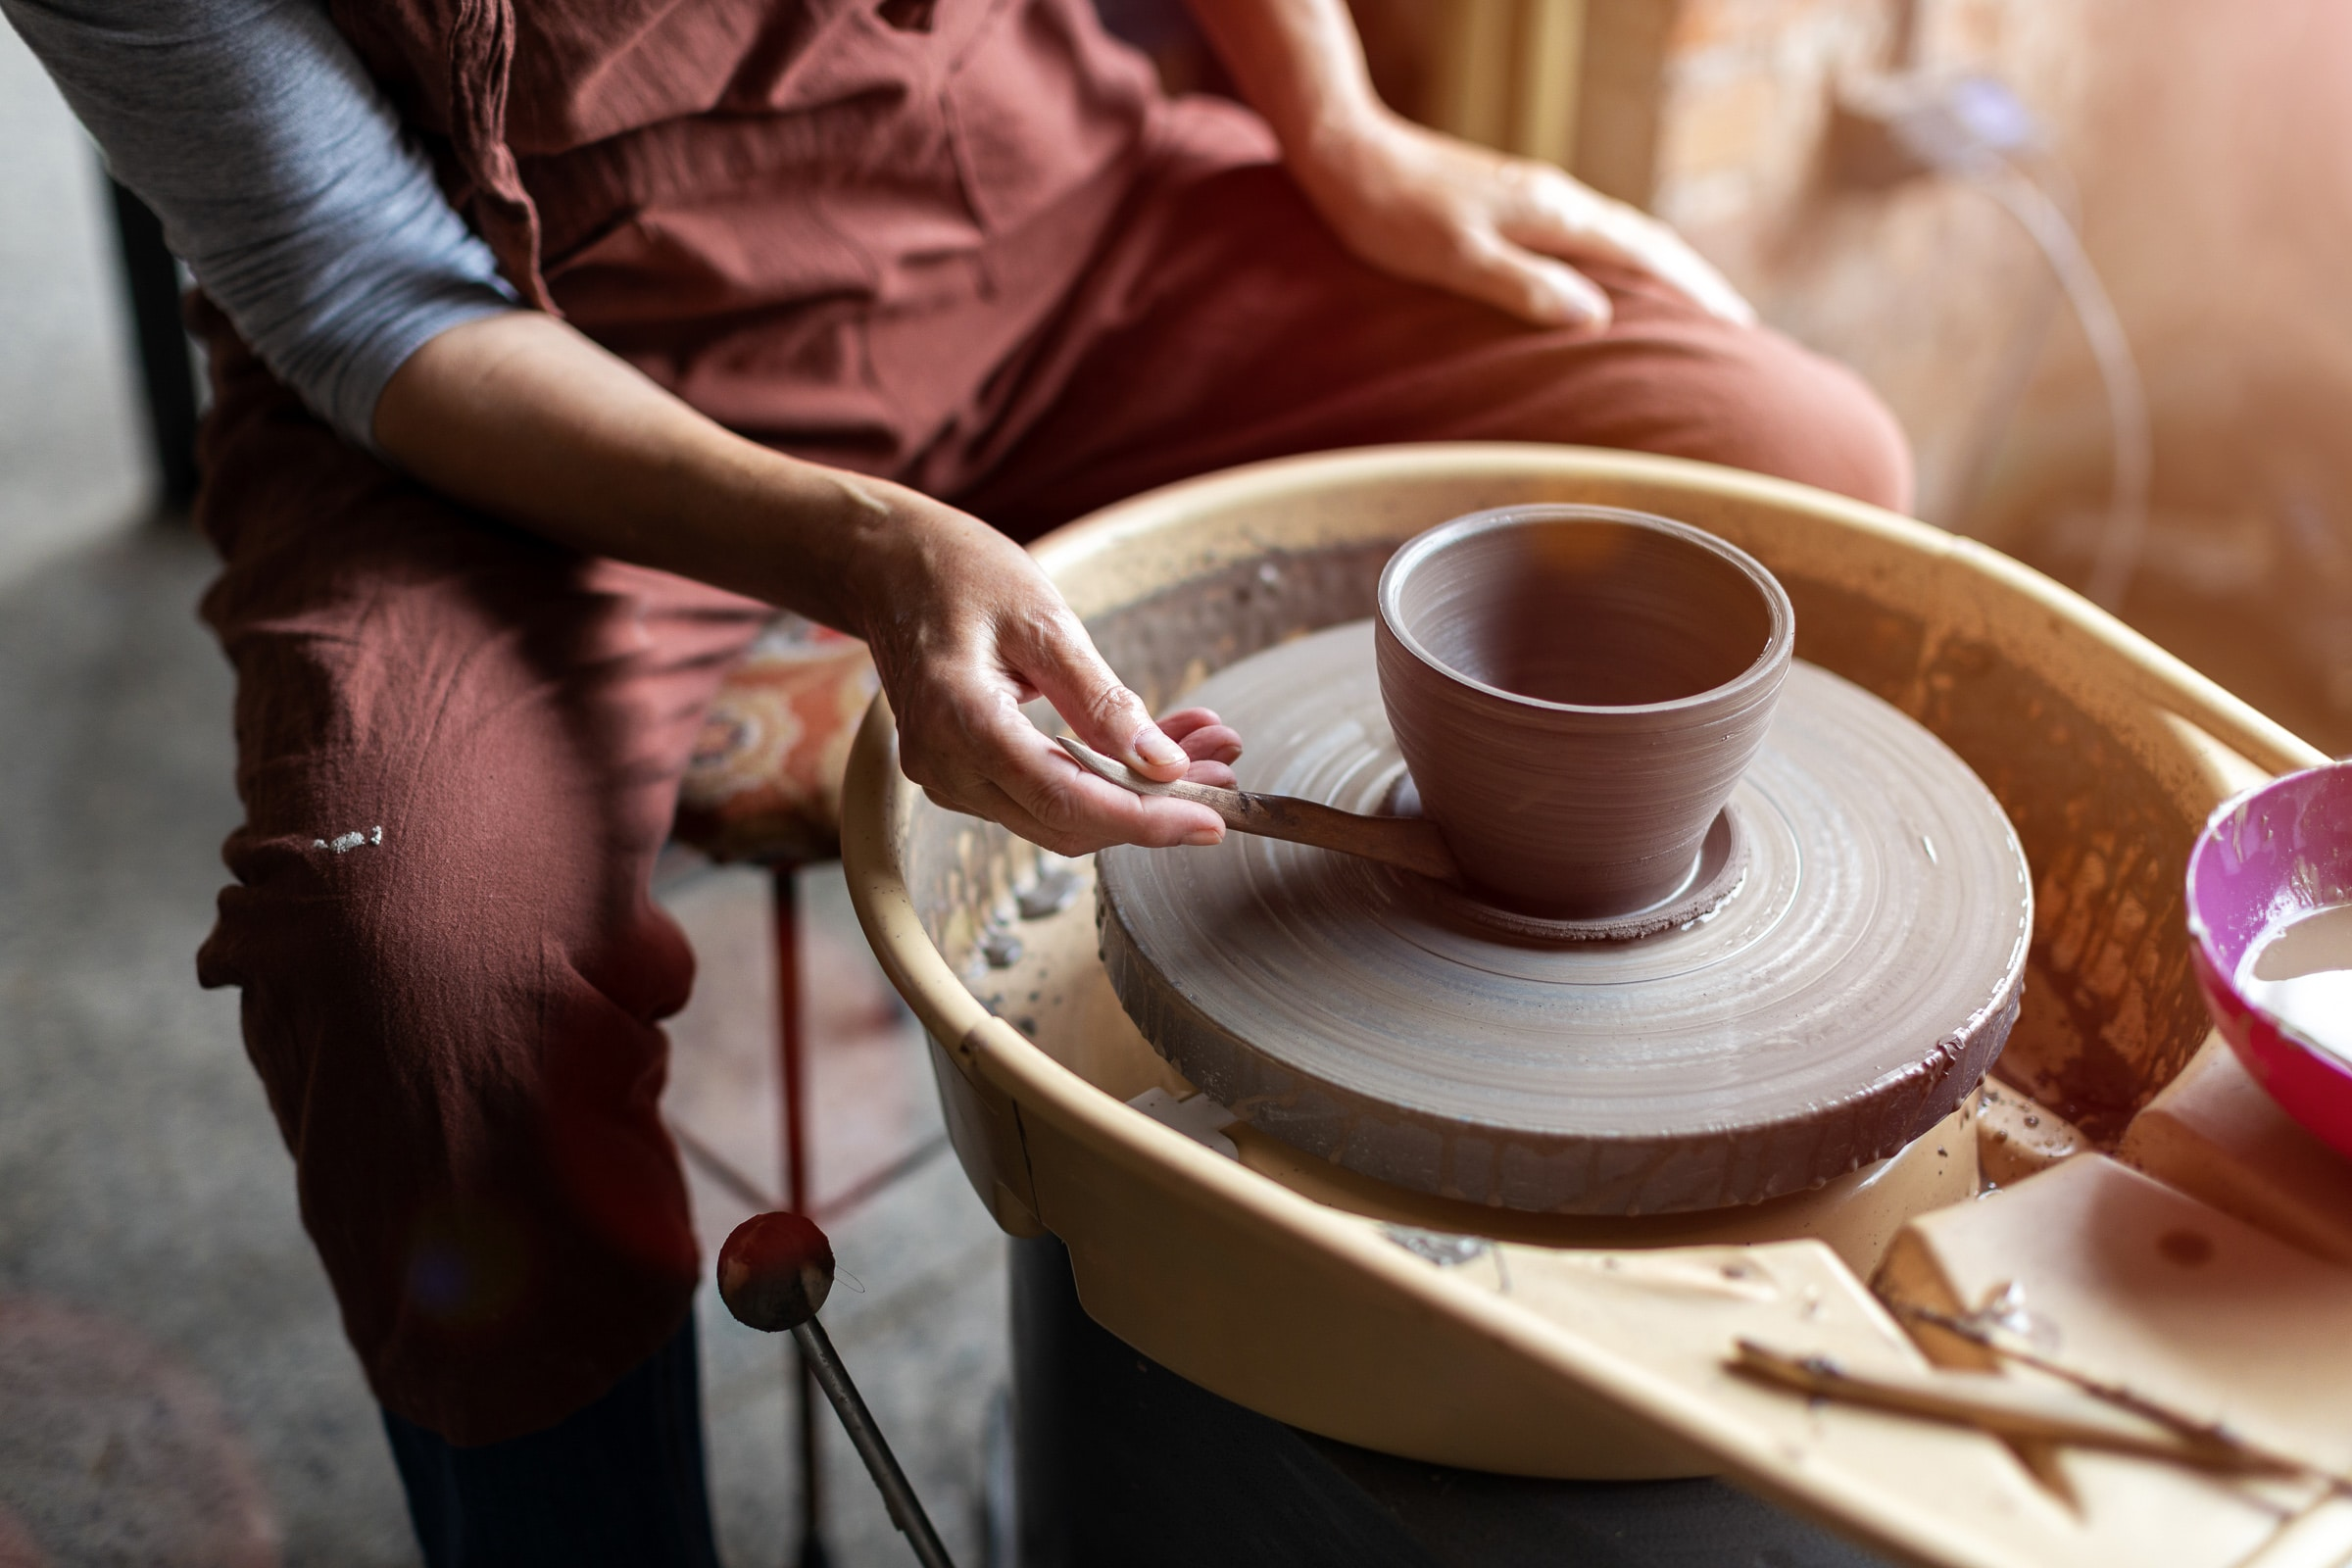 Hand made ceramics are formed by a mature woman business owner on a potters wheel